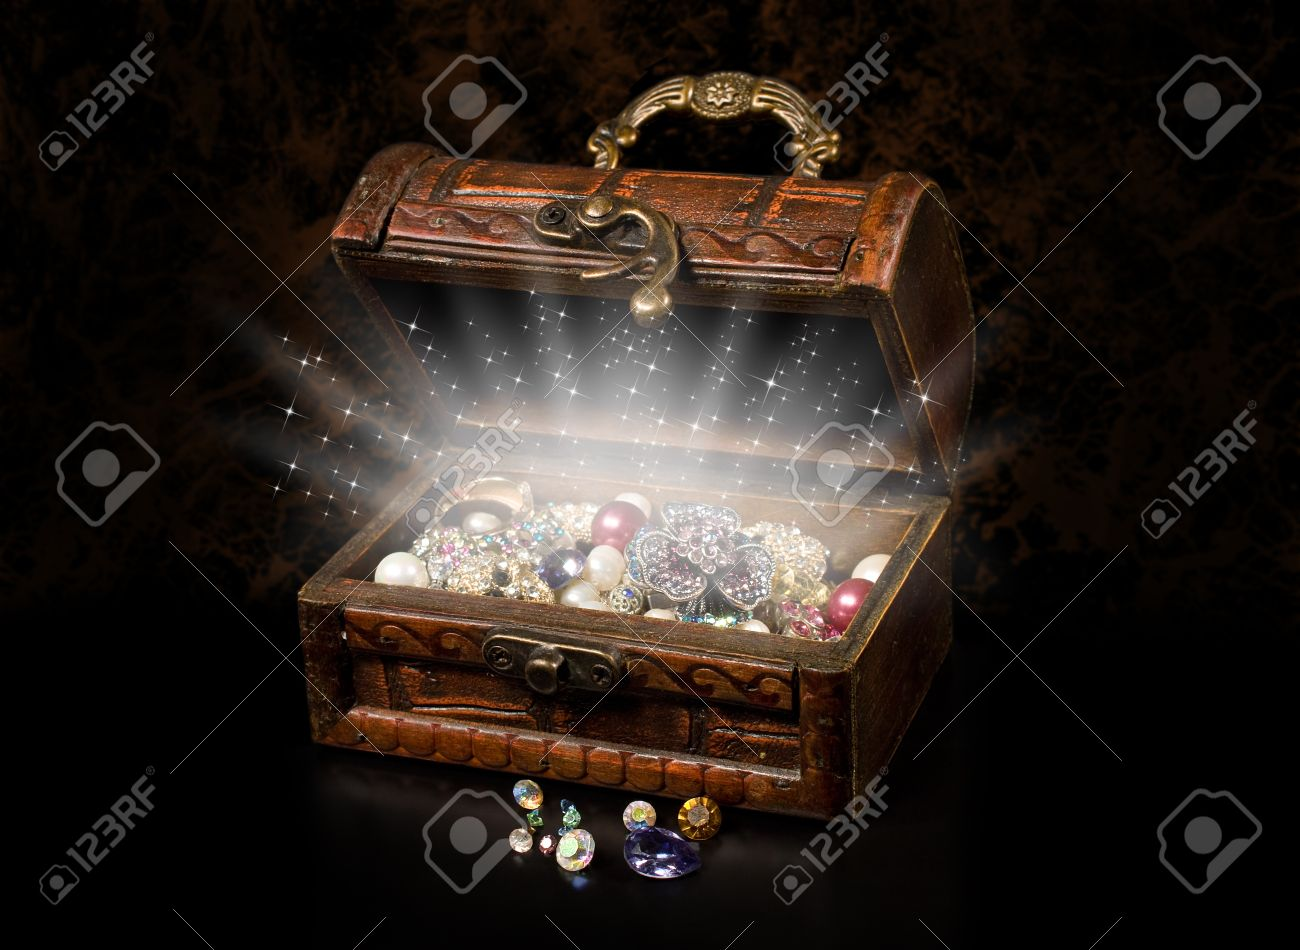 antique chest of pirate treasure on a dark background stock photo